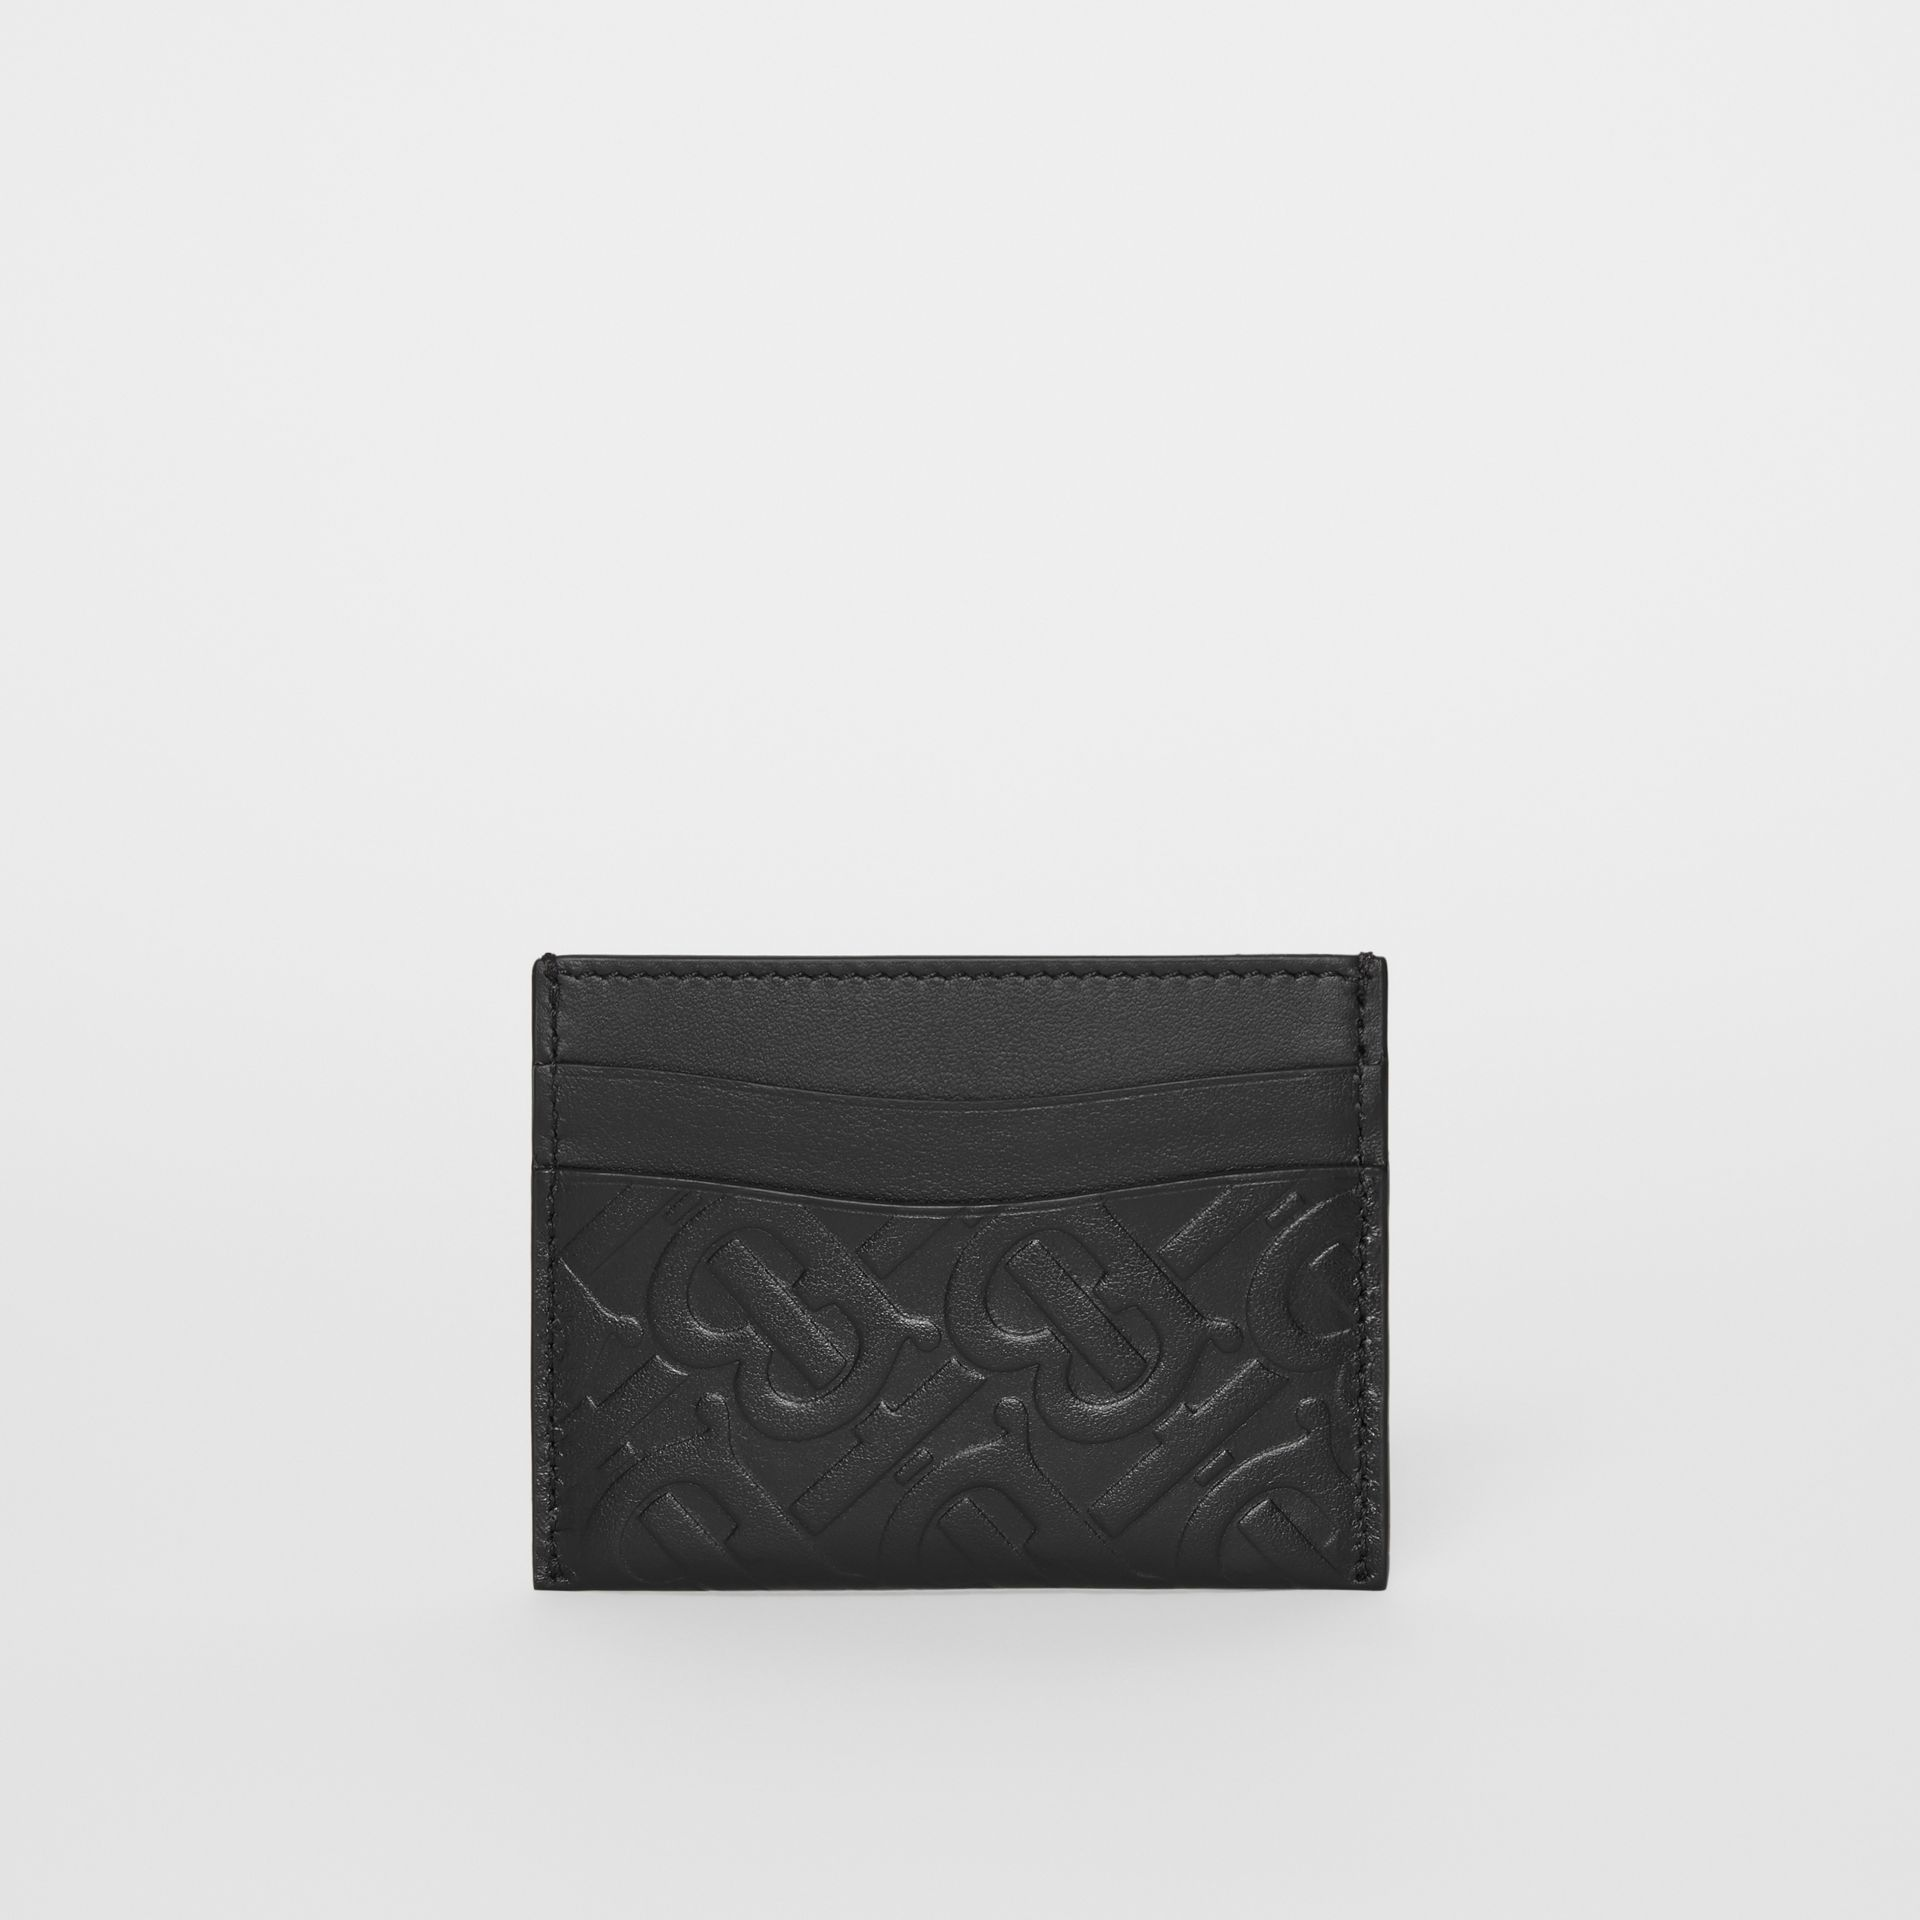 Porte-cartes en cuir Monogram (Noir) - Femme | Burberry - photo de la galerie 4